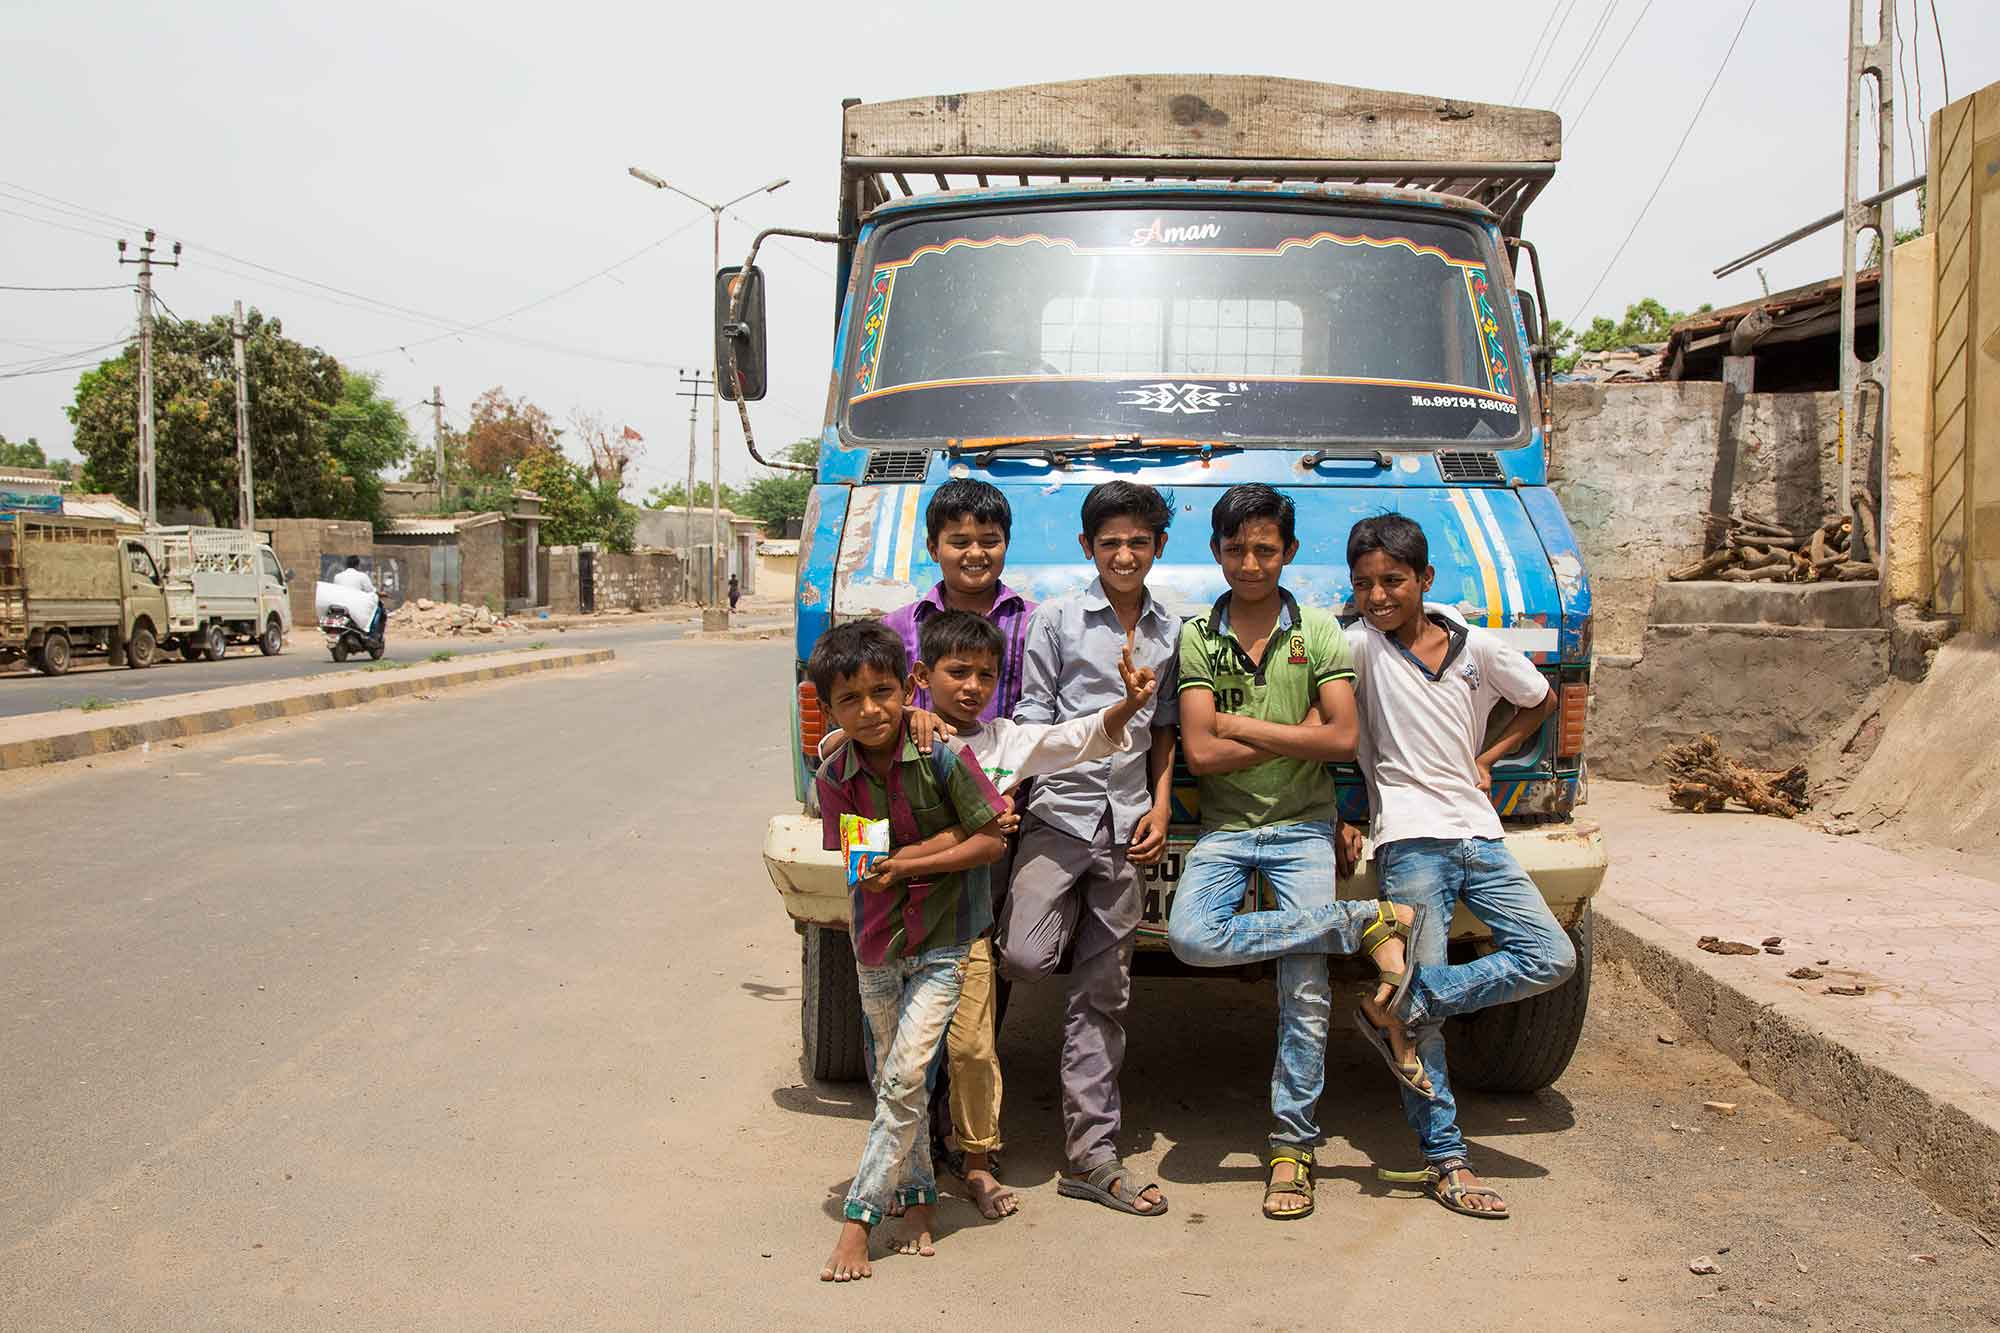 group-of-boys-bhuj-gurajat-india